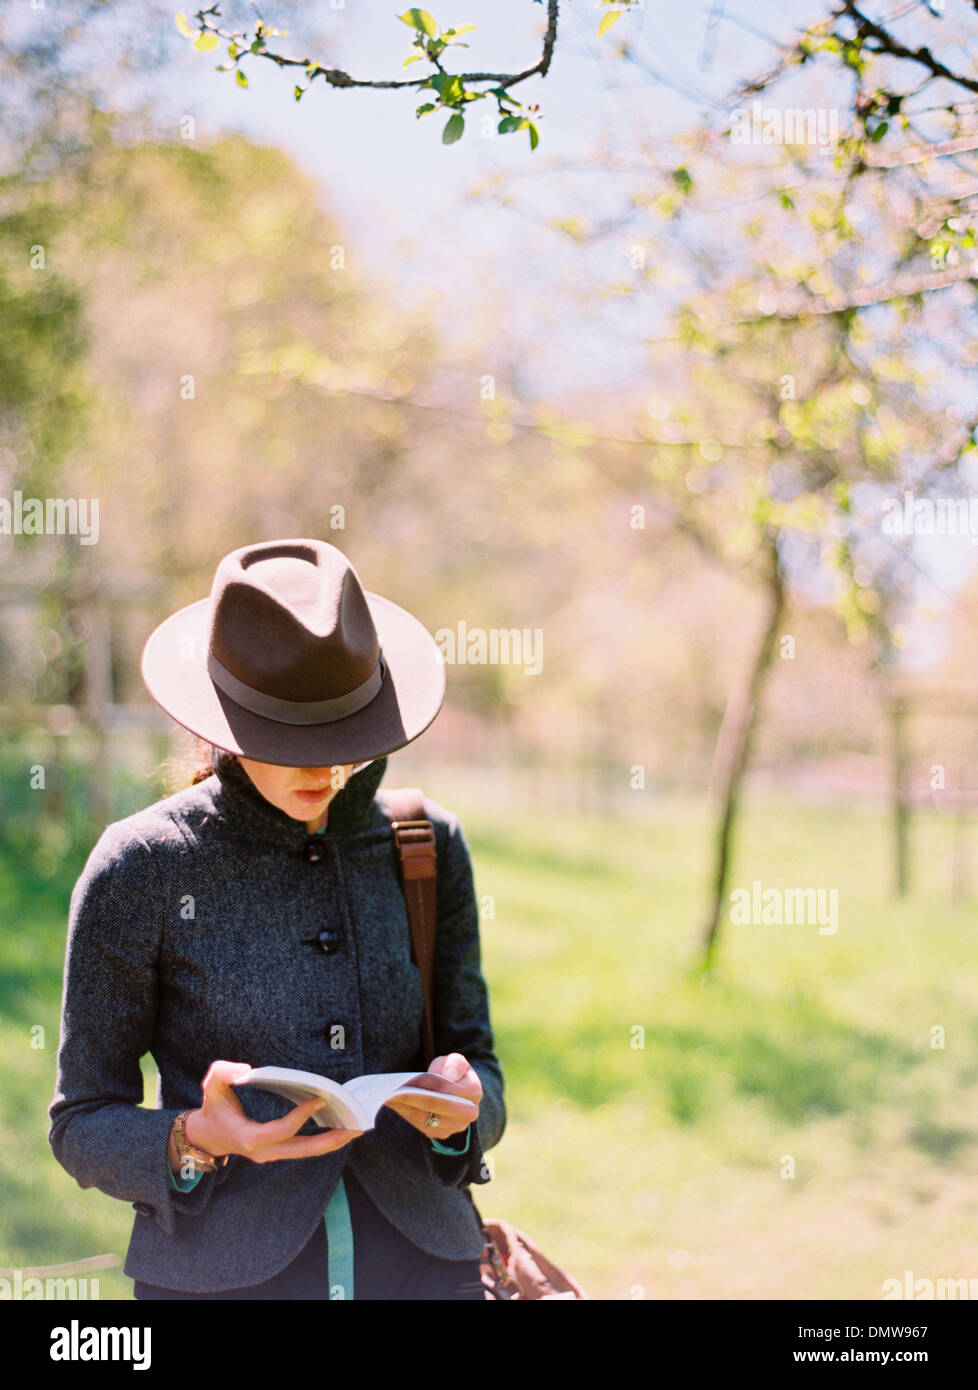 A woman in a hat reading a book. - Stock Image